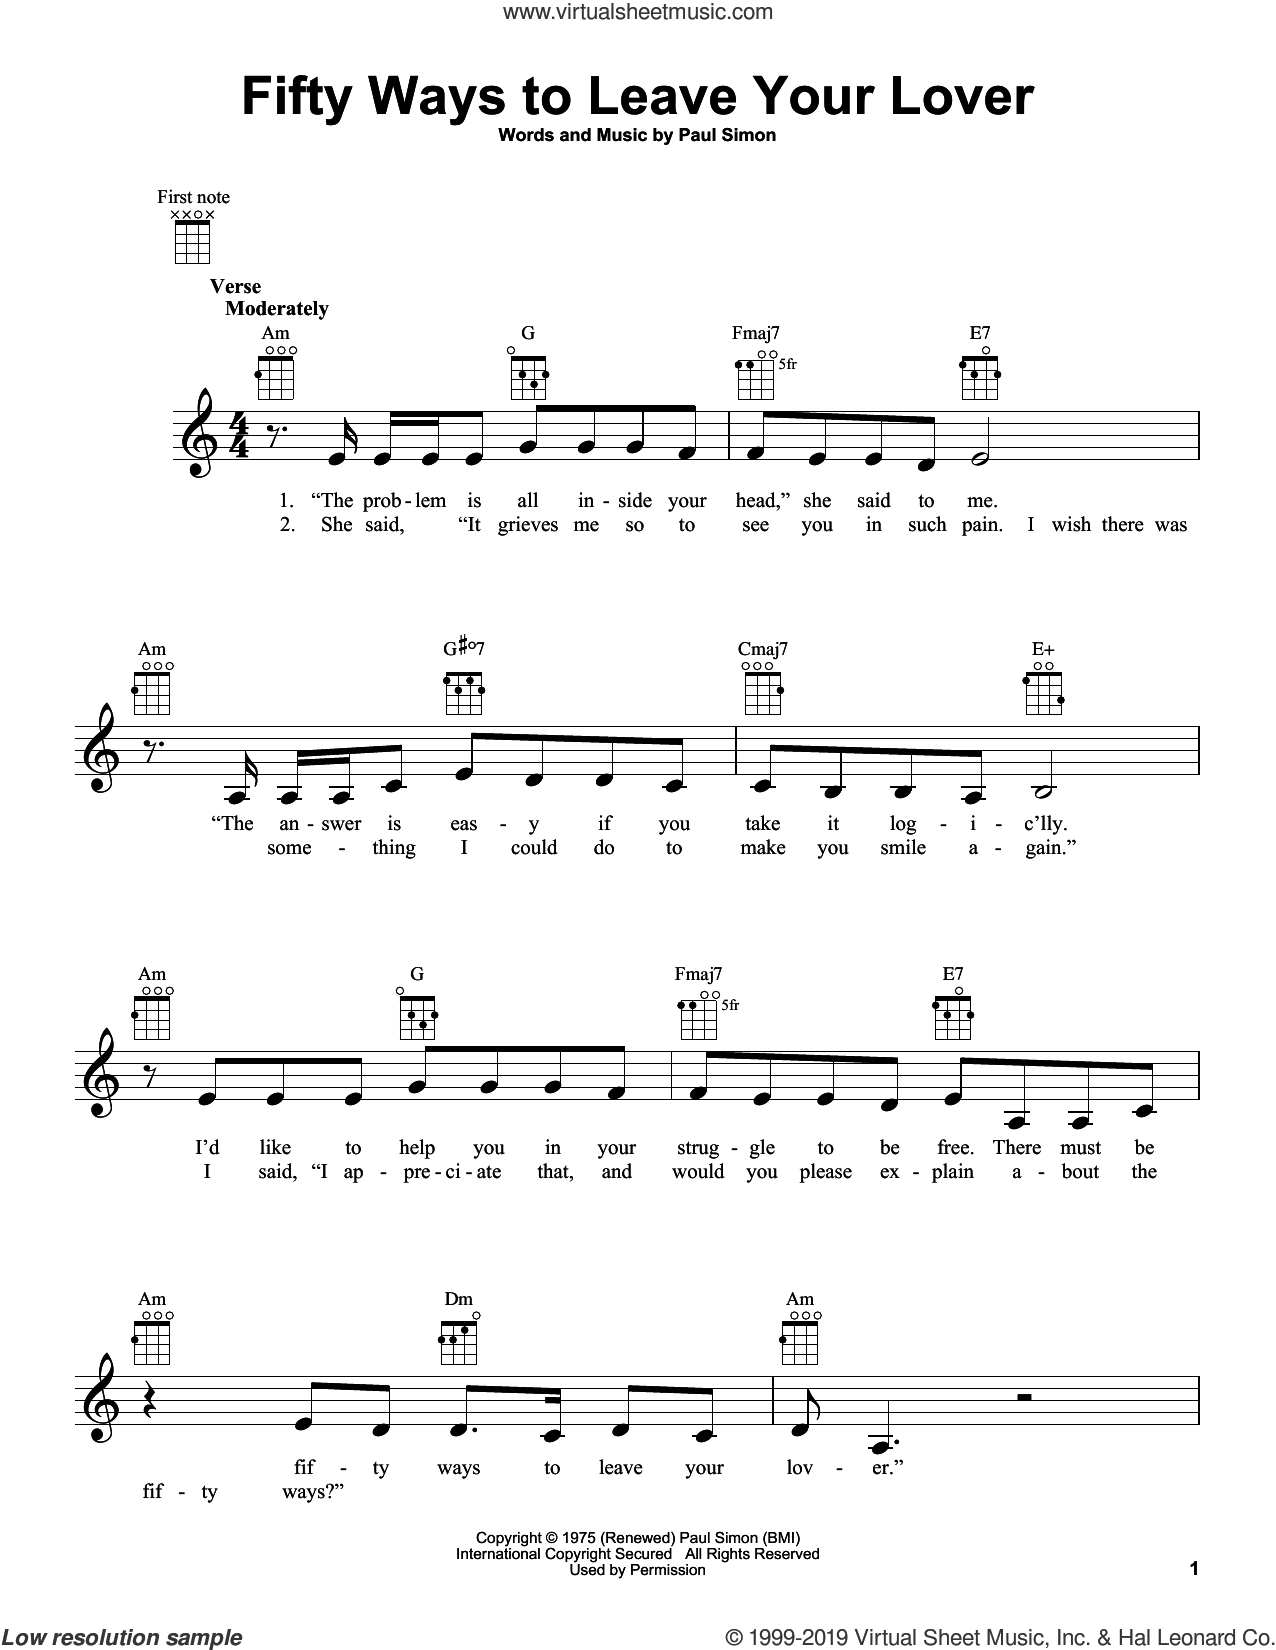 Fifty Ways To Leave Your Lover sheet music for ukulele by Paul Simon and Simon & Garfunkel, intermediate skill level